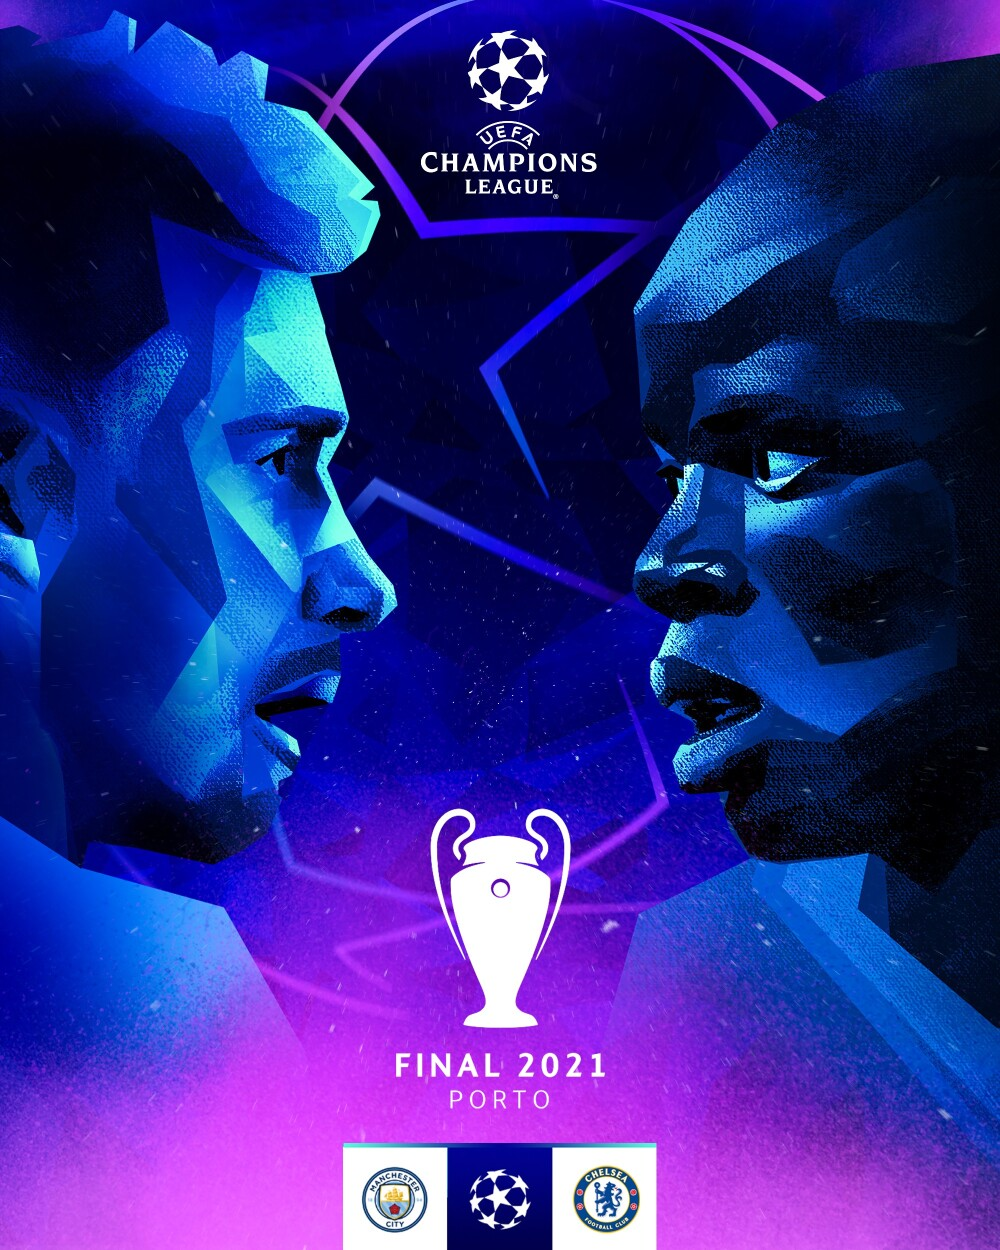 poster-champions-league